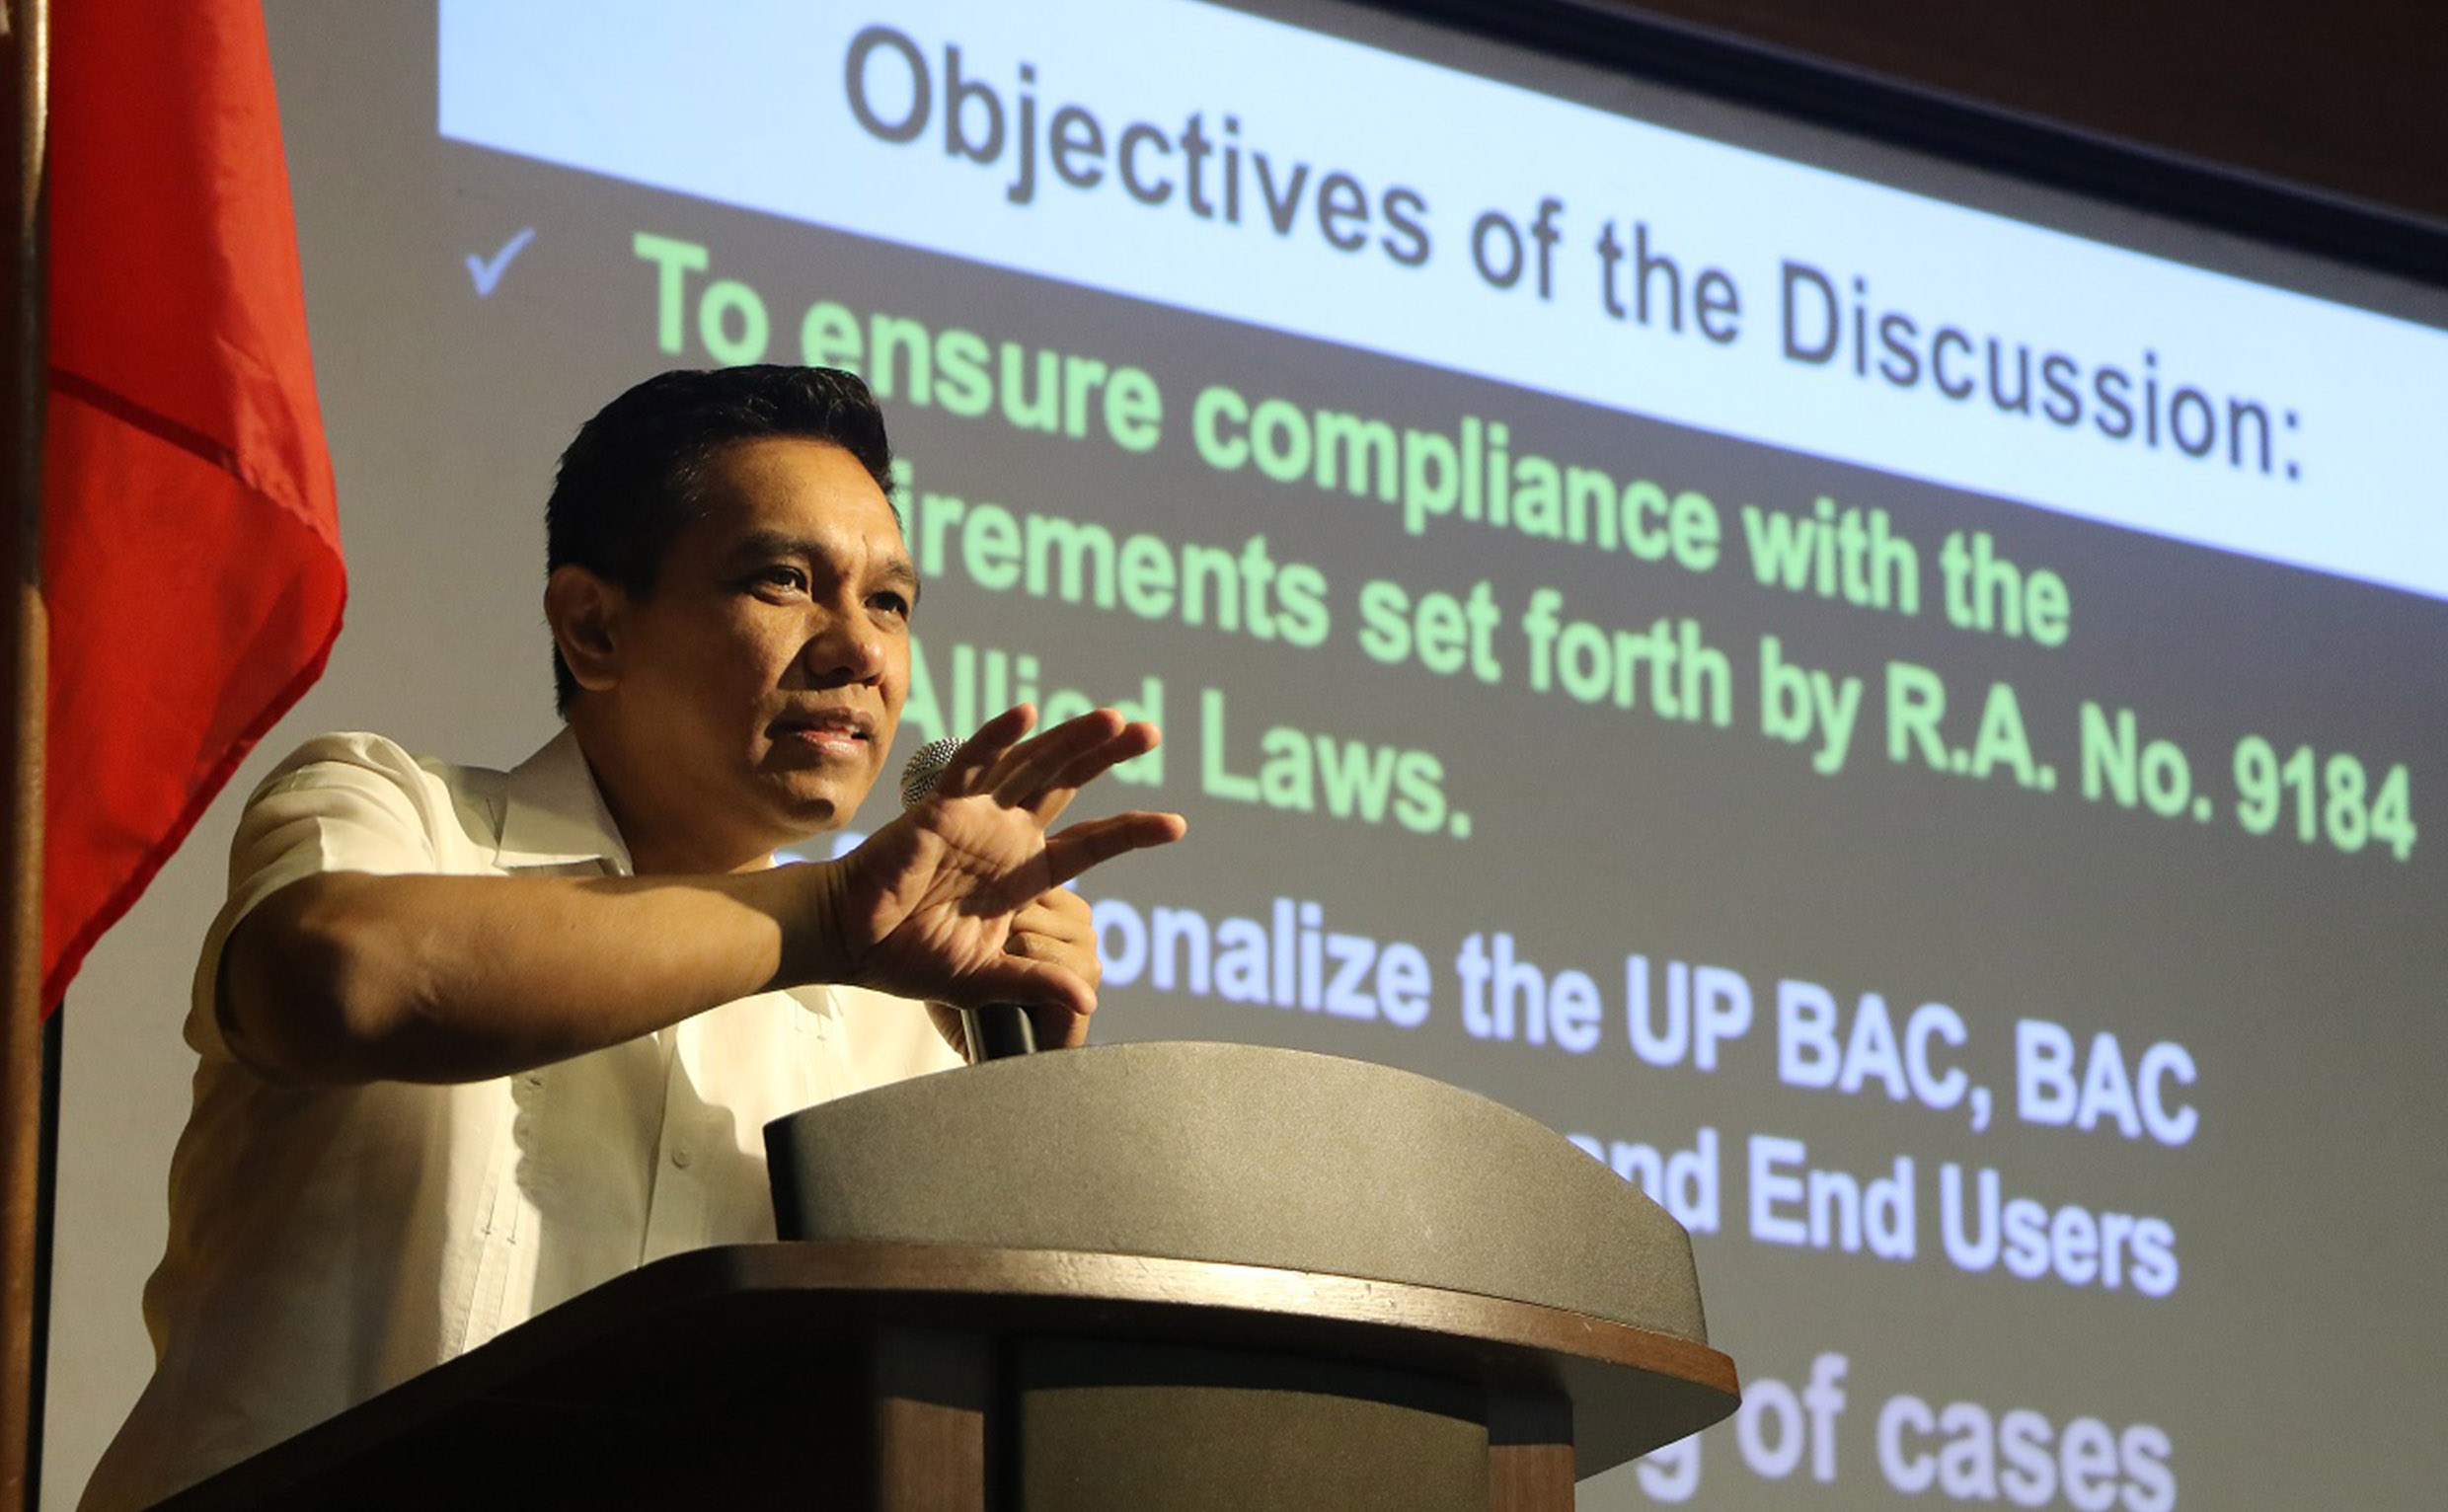 UPLB steps up training in procurement for BAC, TWG